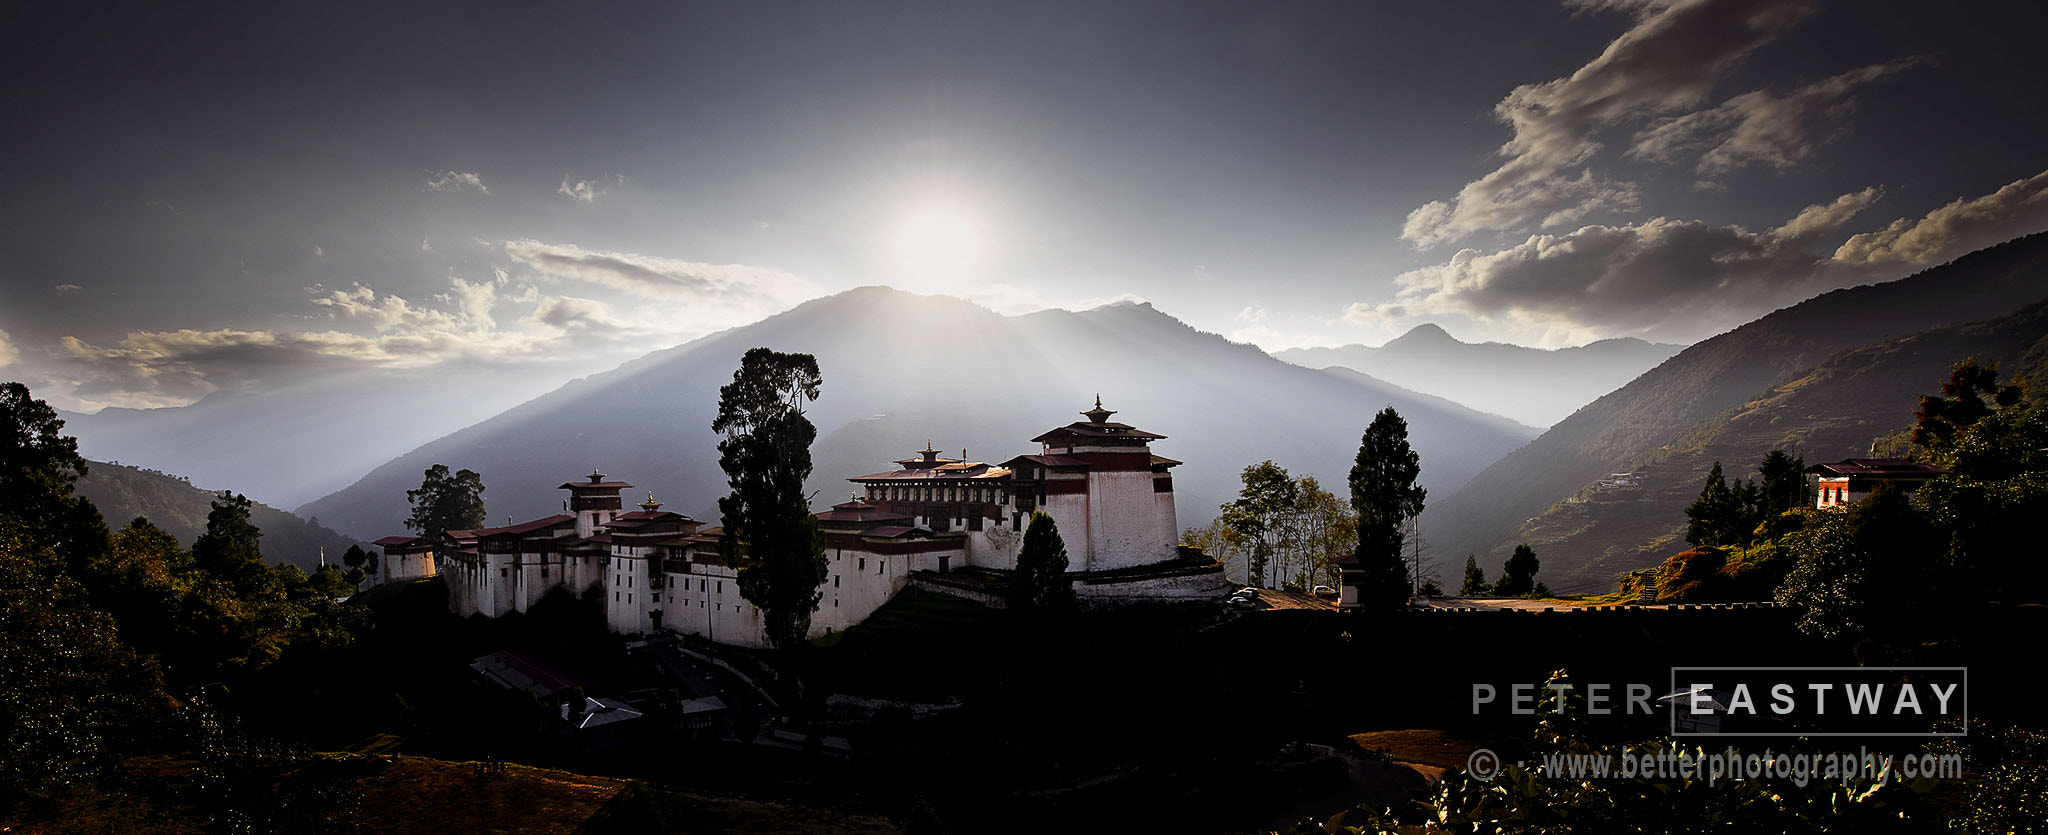 Photograph Trongsa Dzong by Peter Eastway on 500px